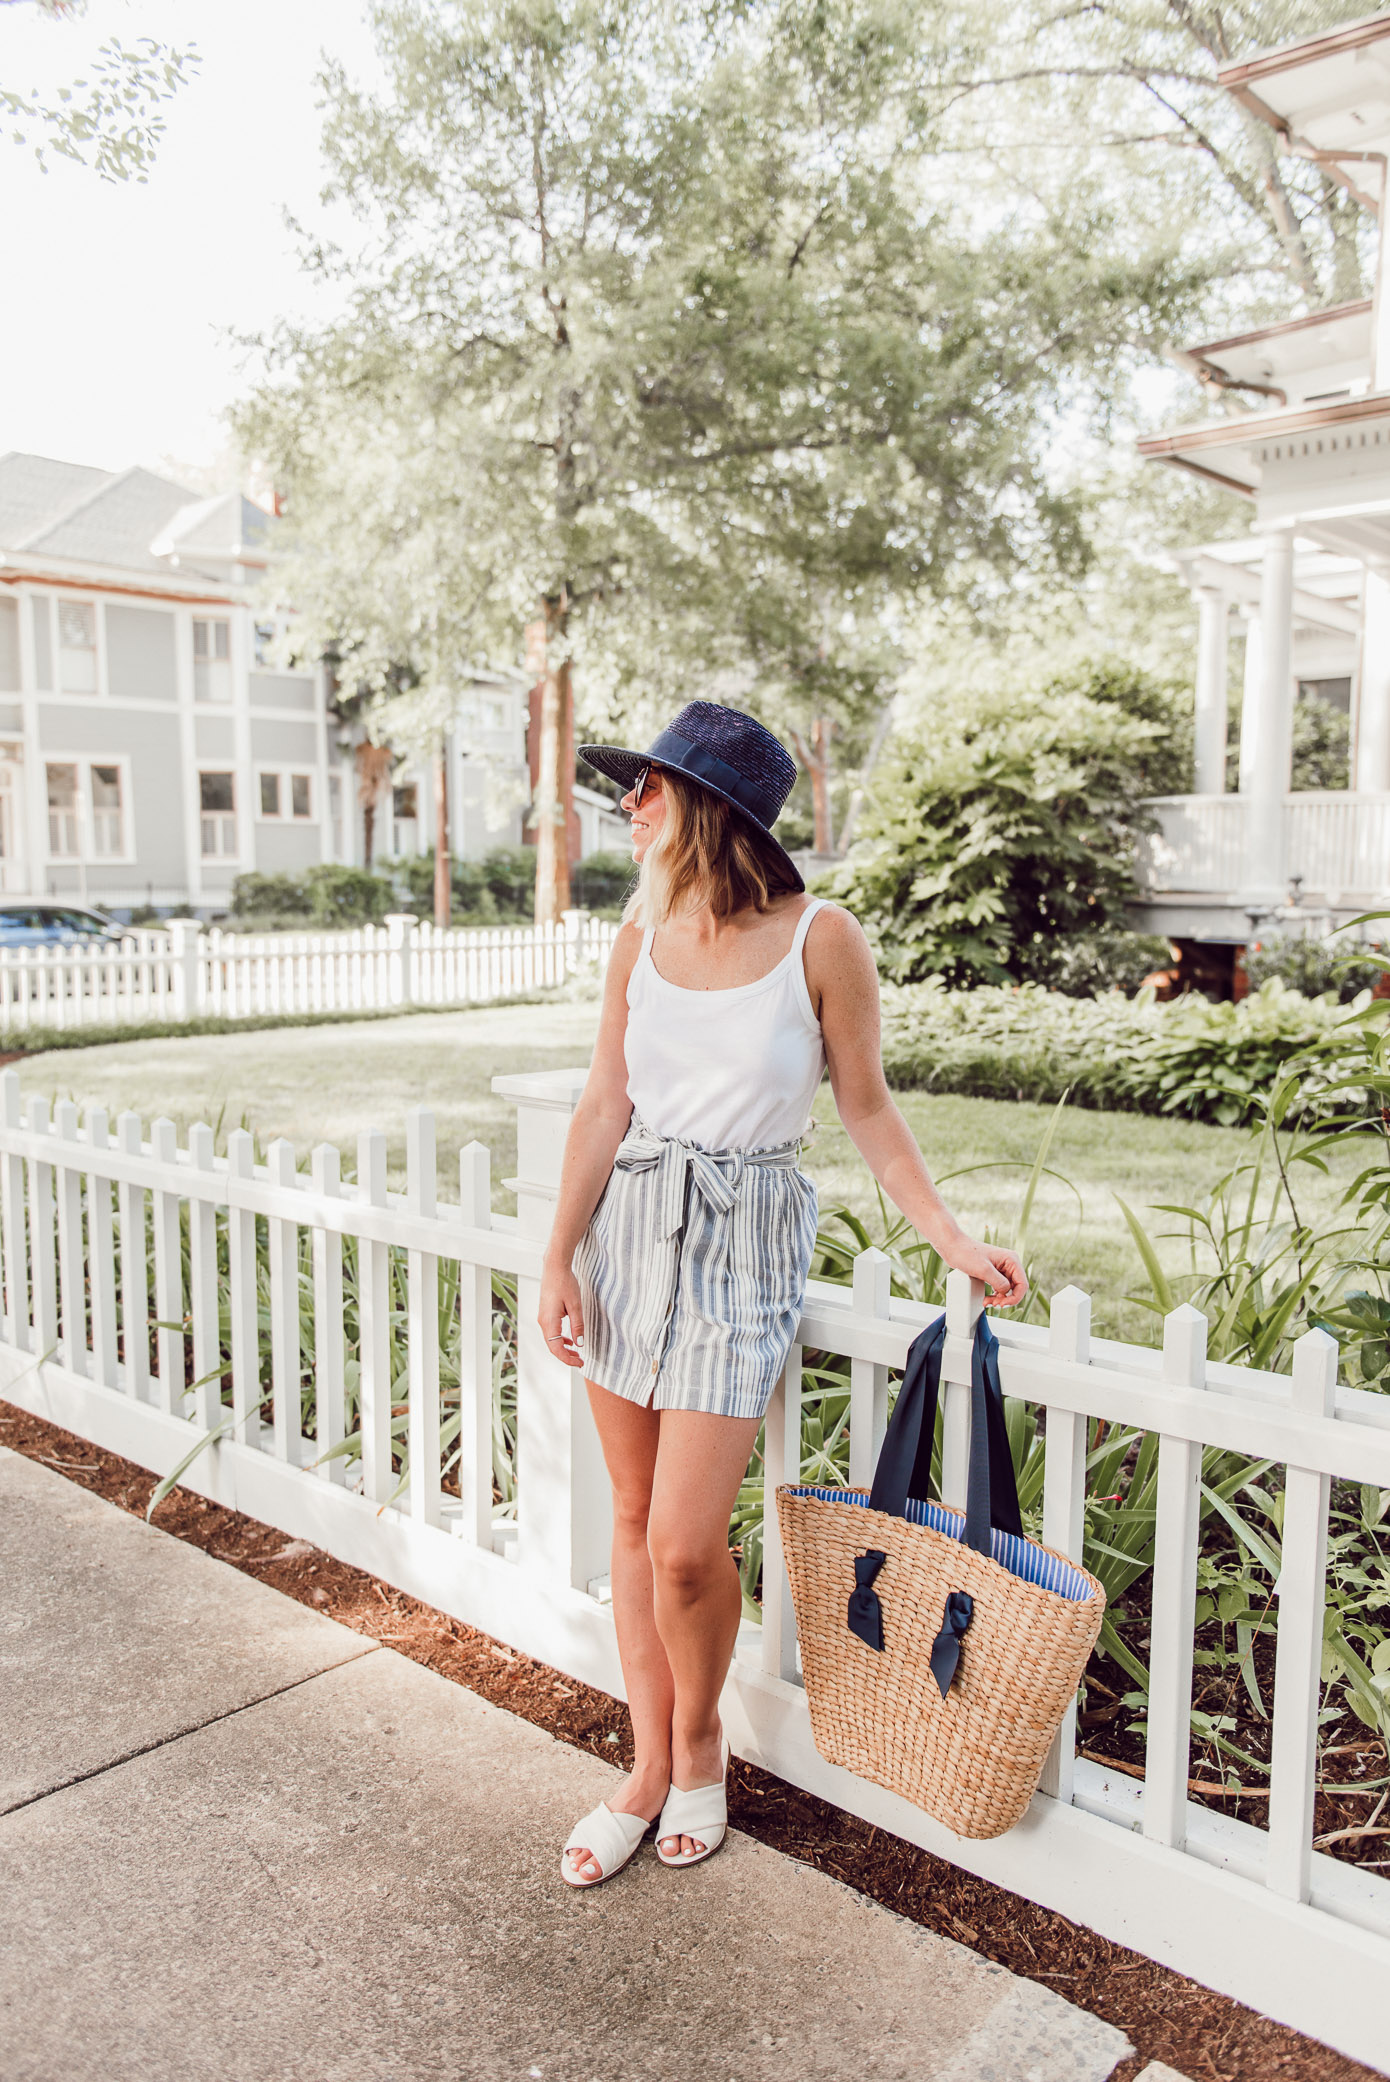 Savoring Summer | The Tank Every Woman Needs - Louella Reese